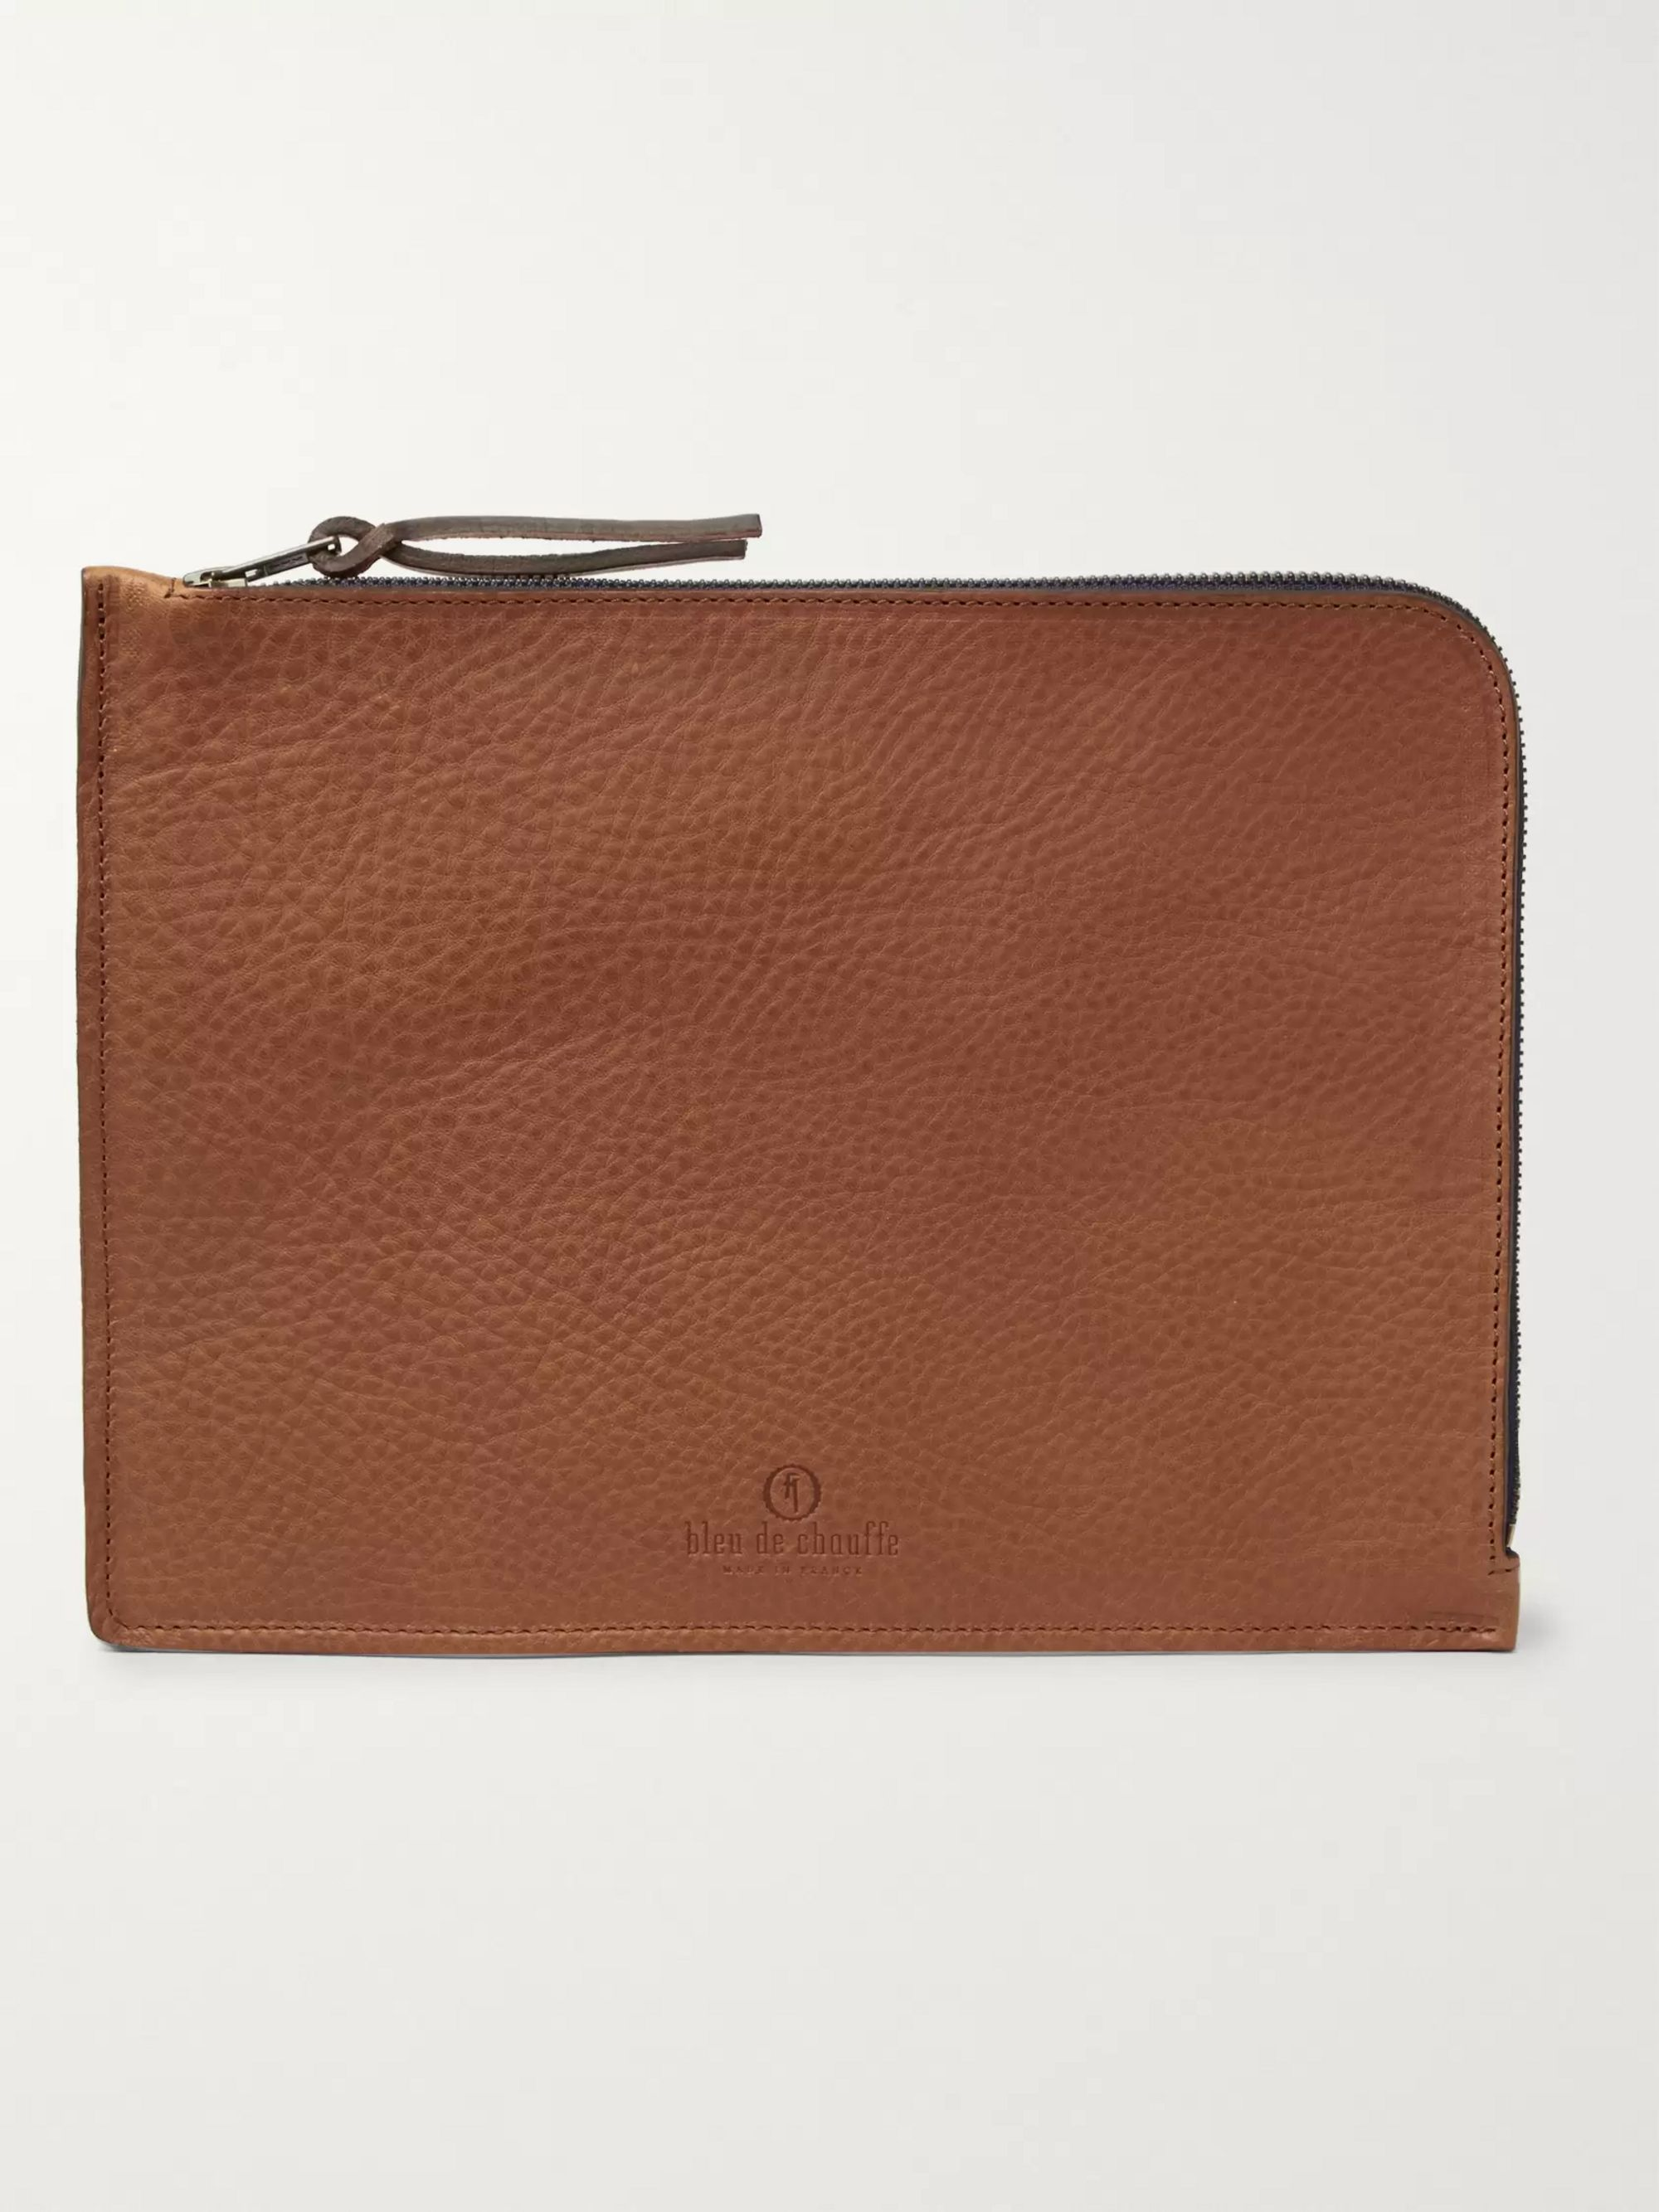 Bleu de Chauffe Full-Grain Leather Zip-Around Pouch